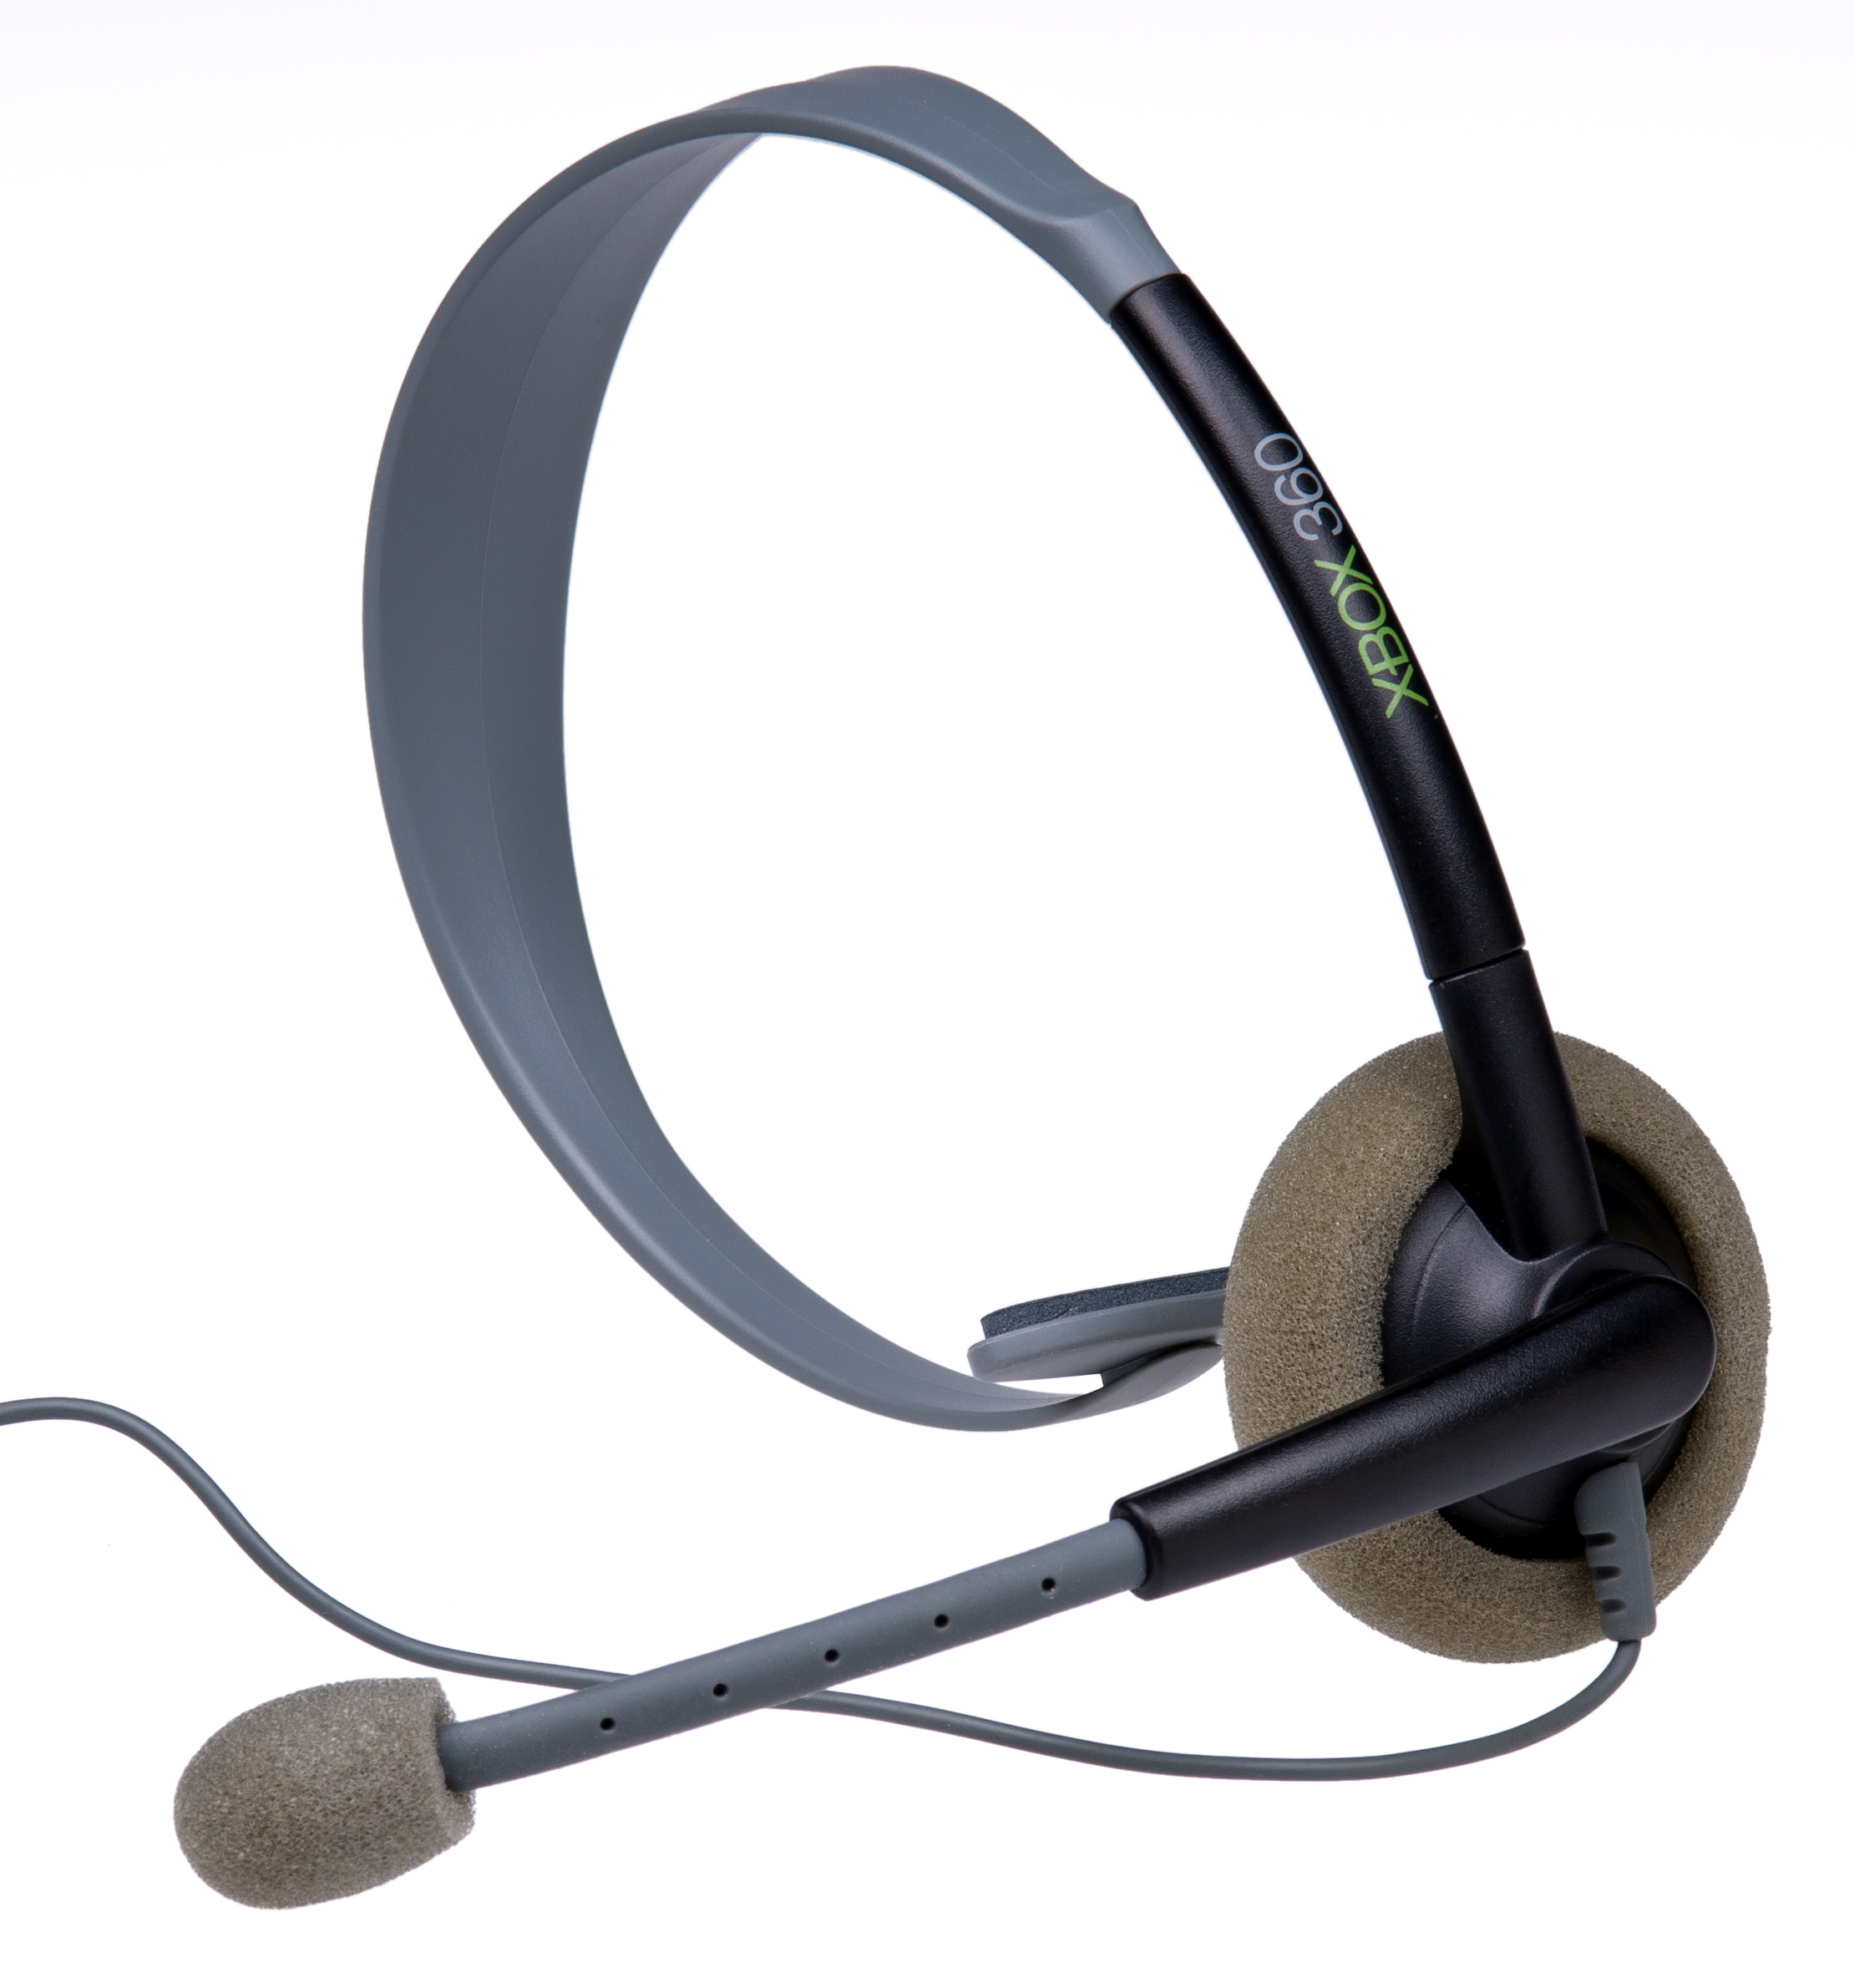 File:Xbox-360-Headset-Mk2-Black.jpg - Wikimedia Commons